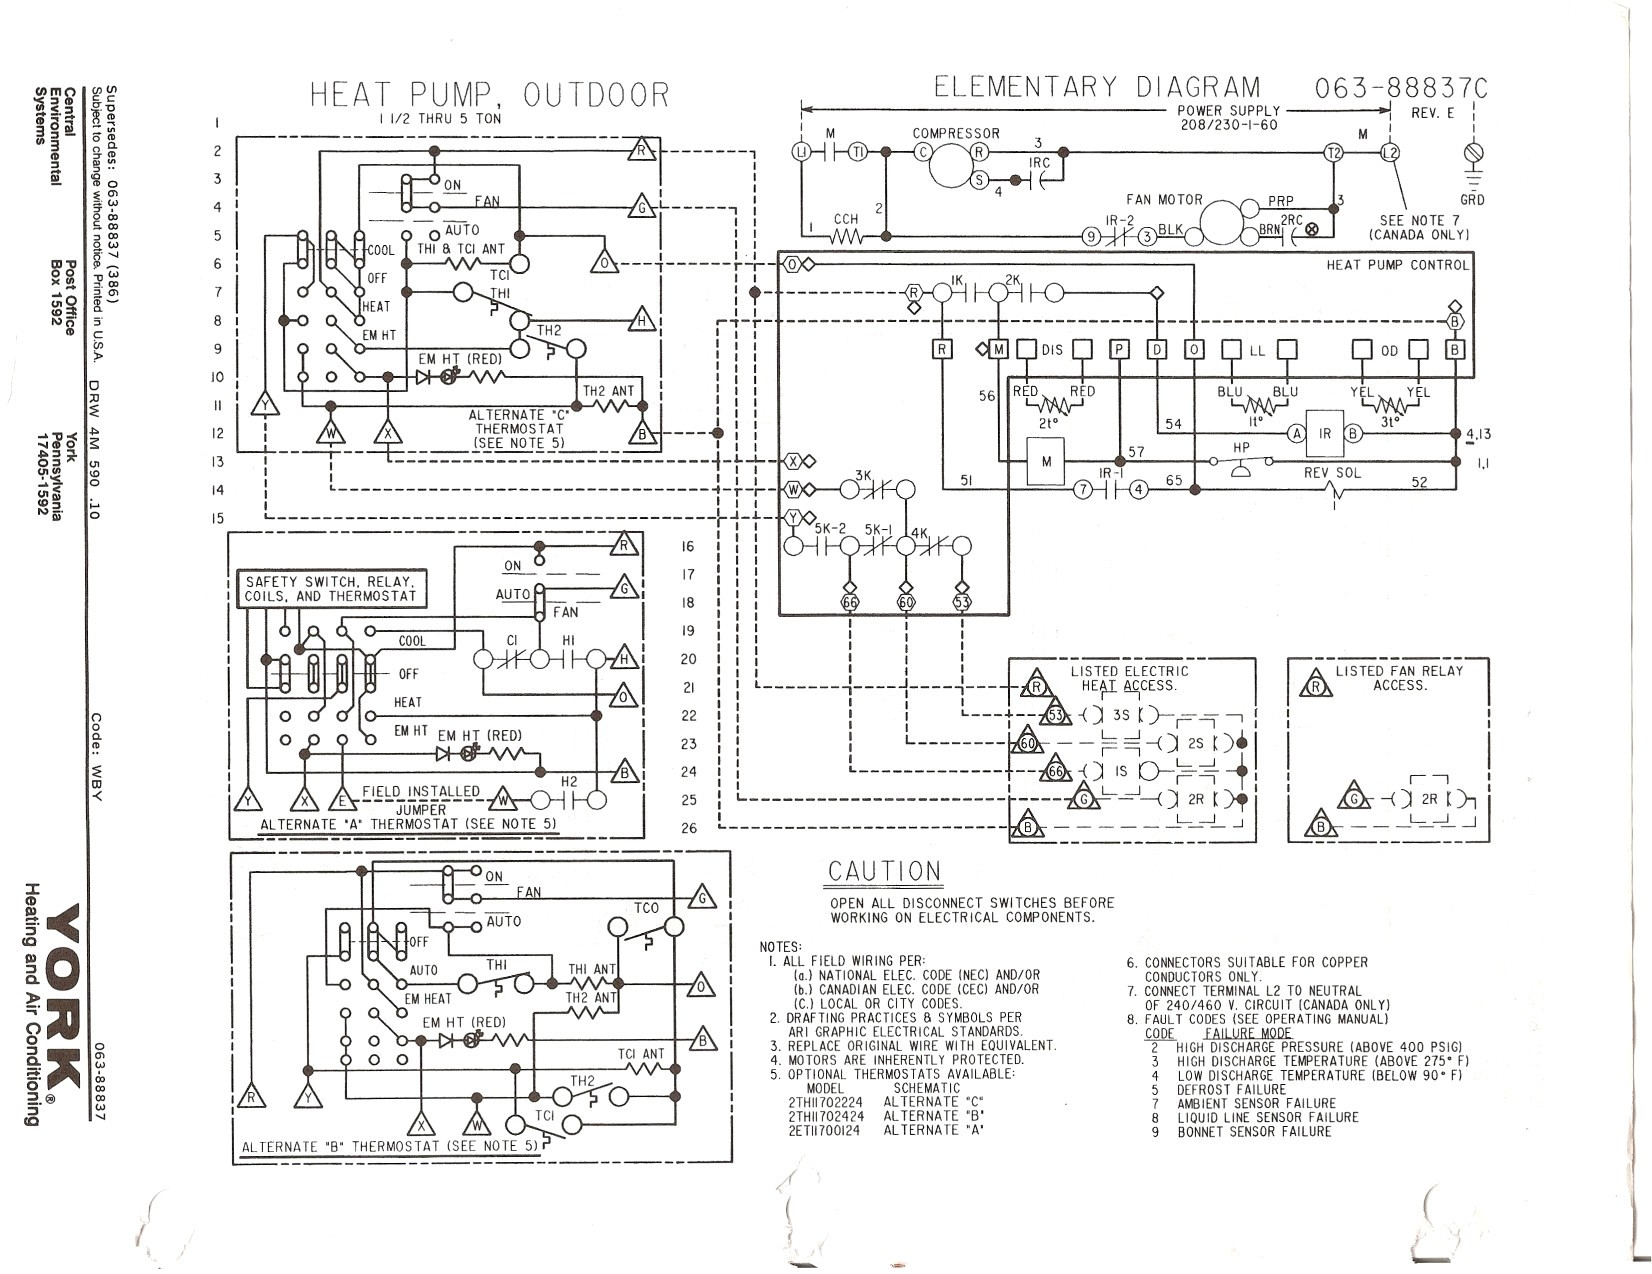 york rooftop unit wiring diagram Download-York Rooftop Unit Wiring Diagram Fresh York Wiring Diagrams 20-h